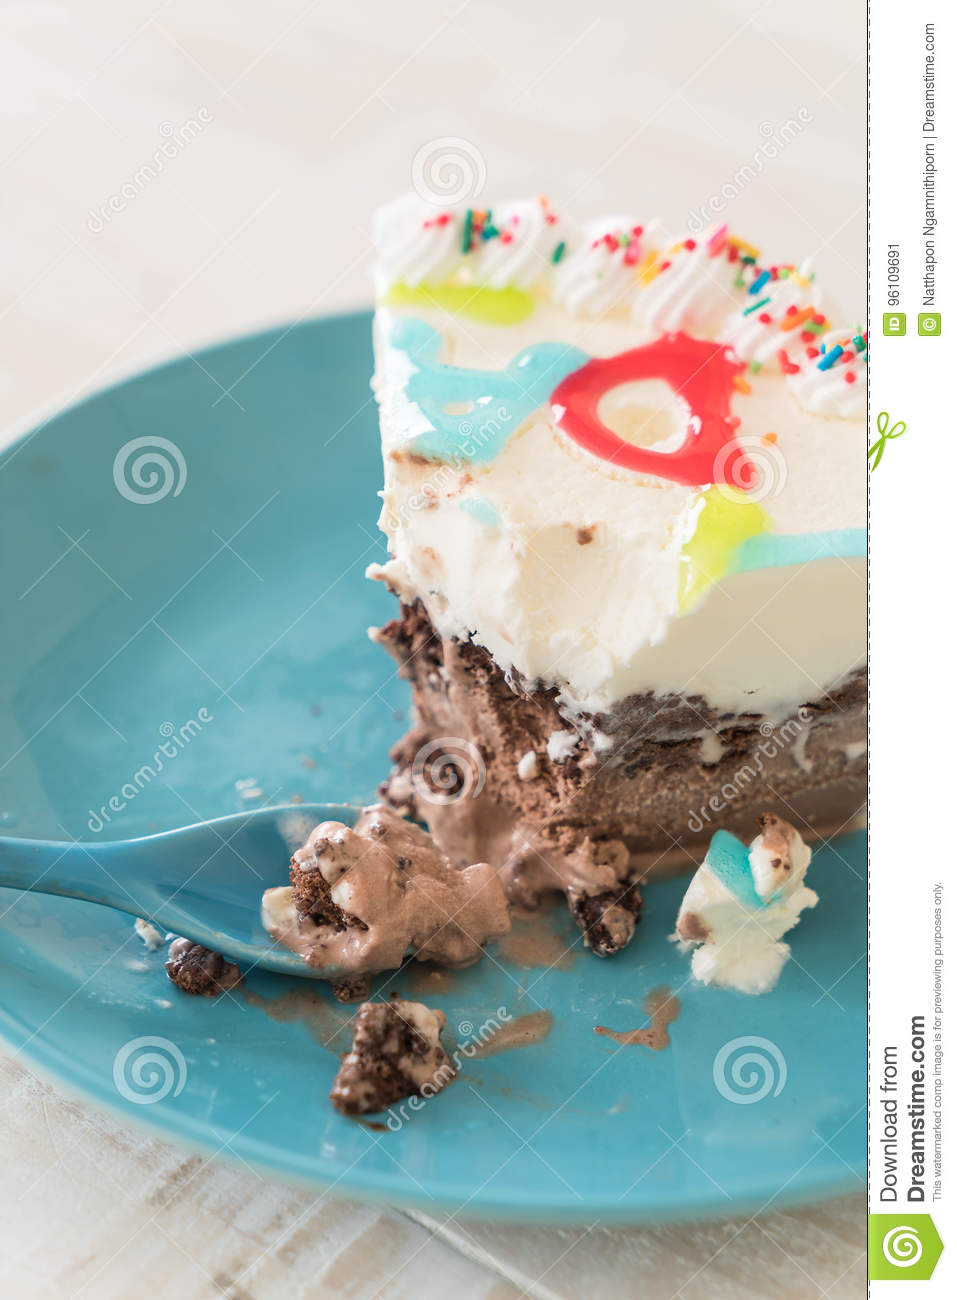 Happy Birthday Ice Cream Cake Stock Image Image Of Celebrate